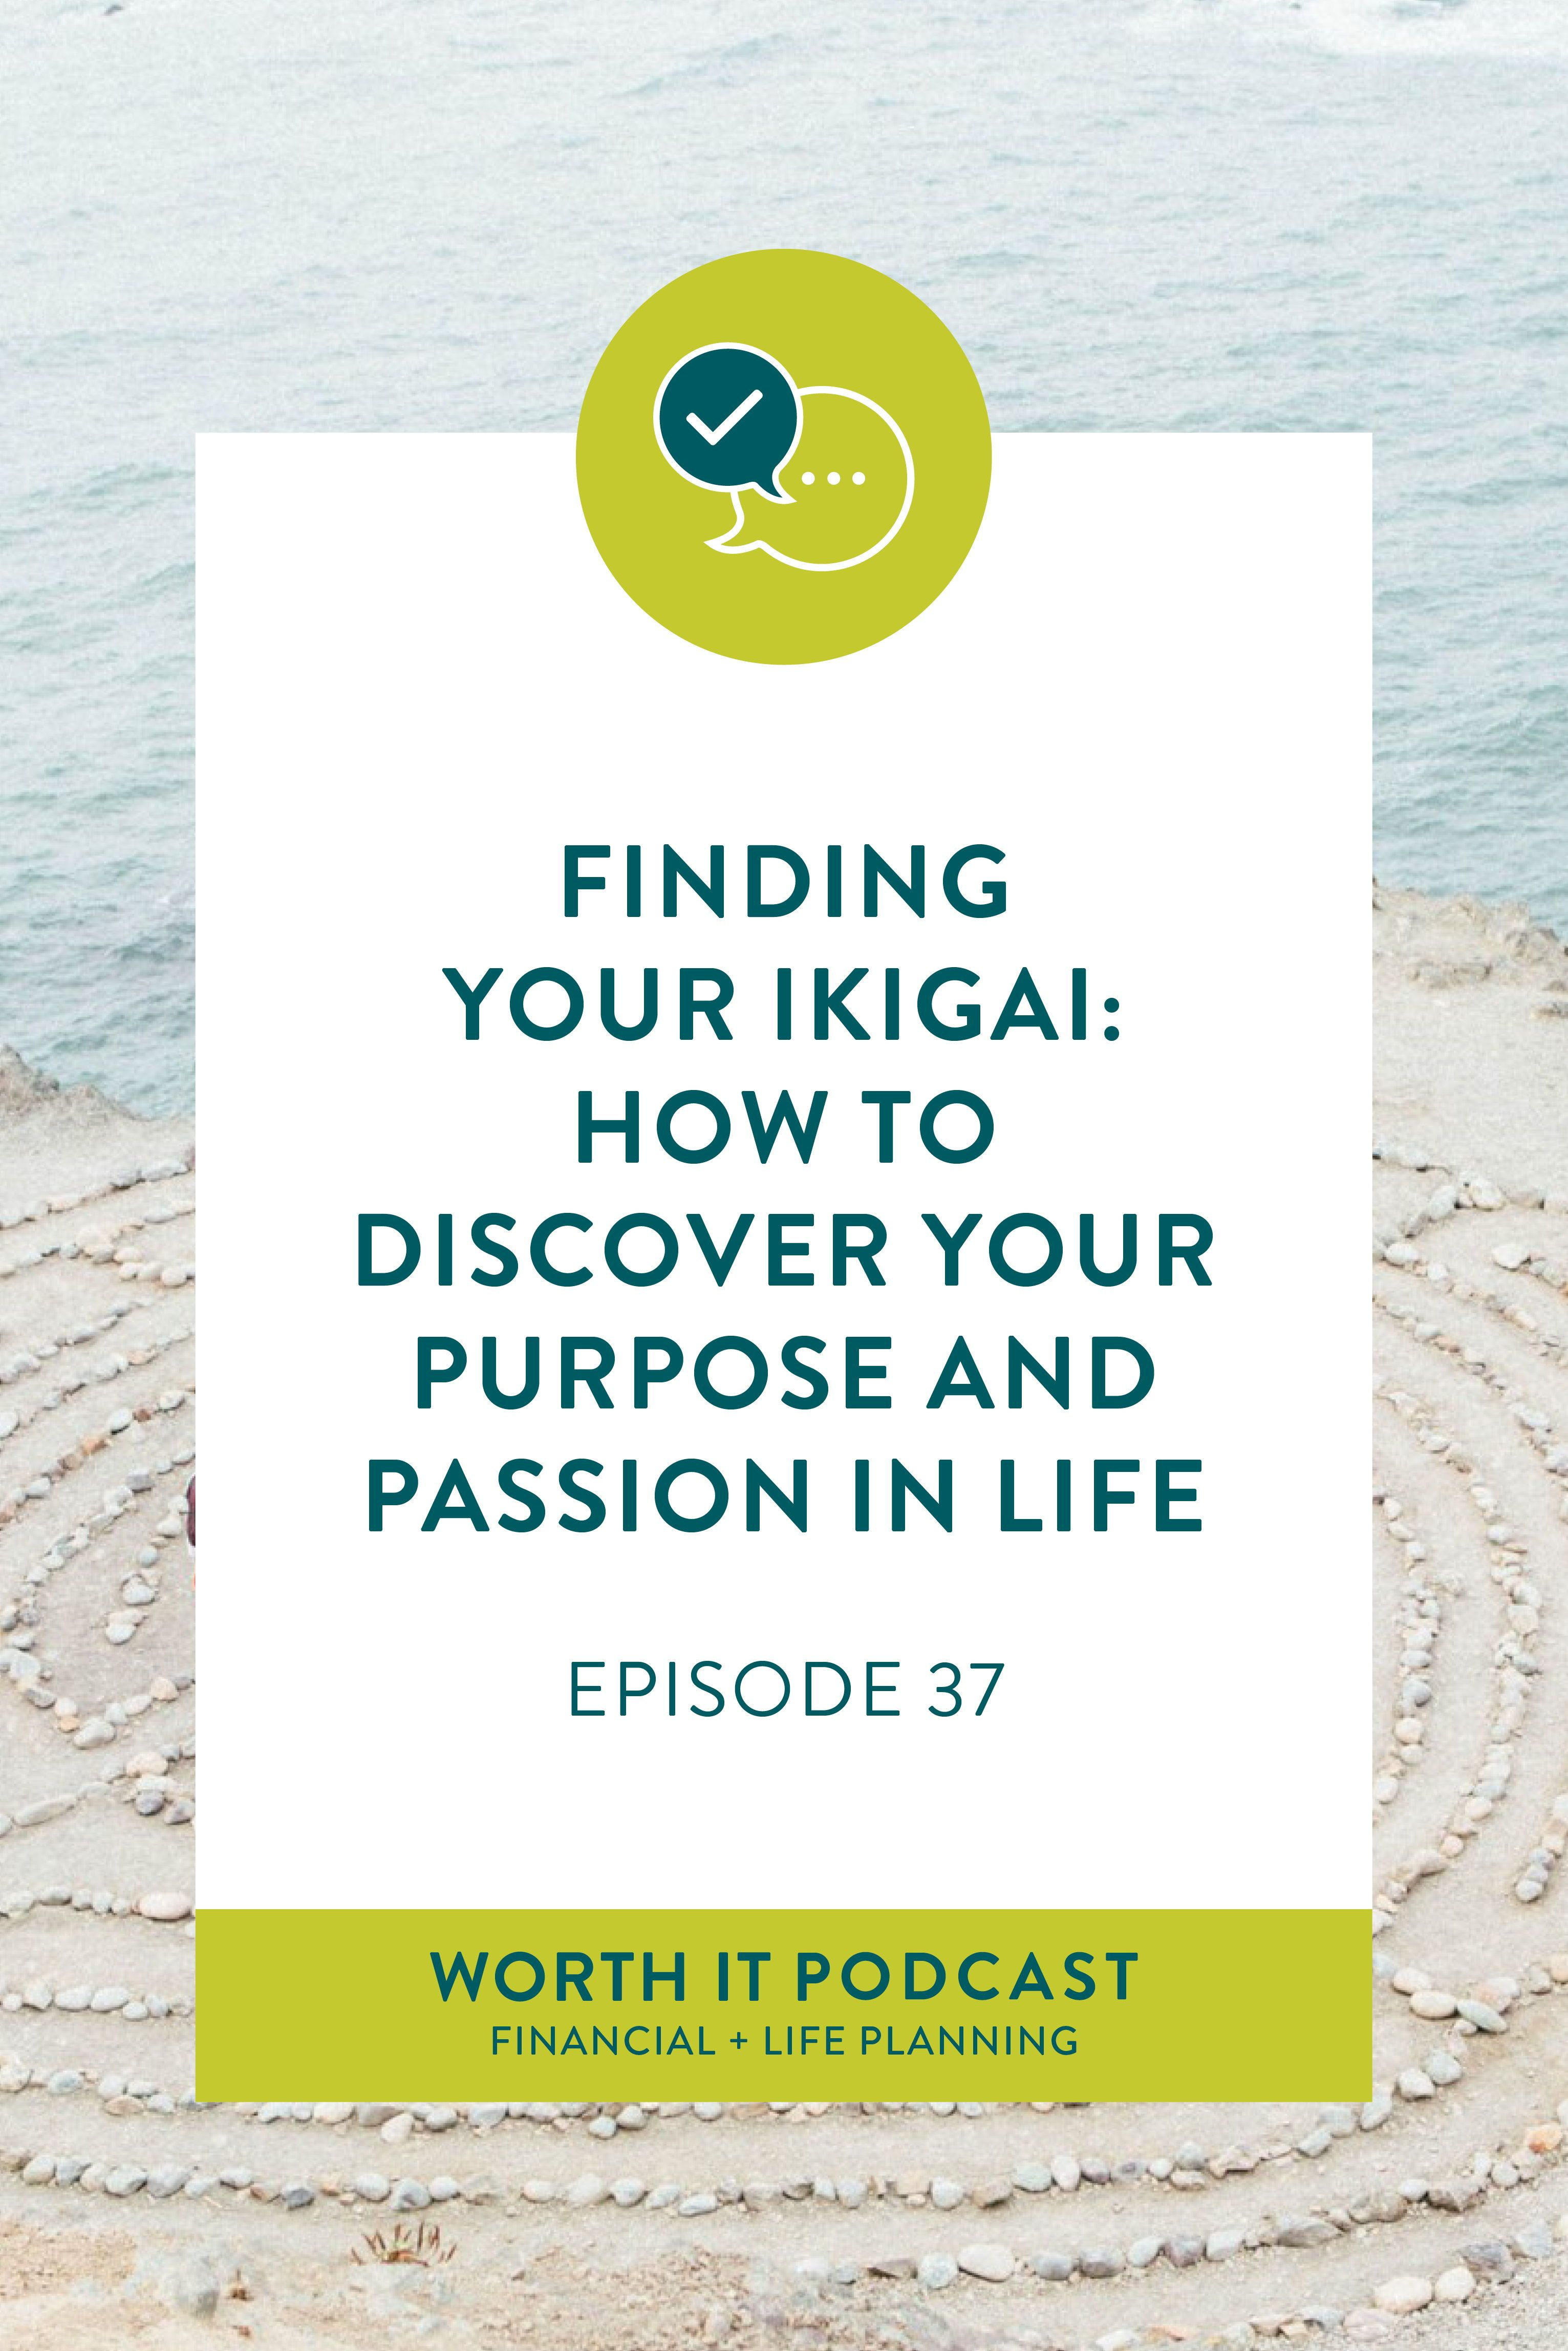 Finding Your Ikigai How To Discover Your Purpose Passion In Life Episode 37 Worth It Podcast Ikigai Me Motivational Quotes Finding Yourself Life Plan